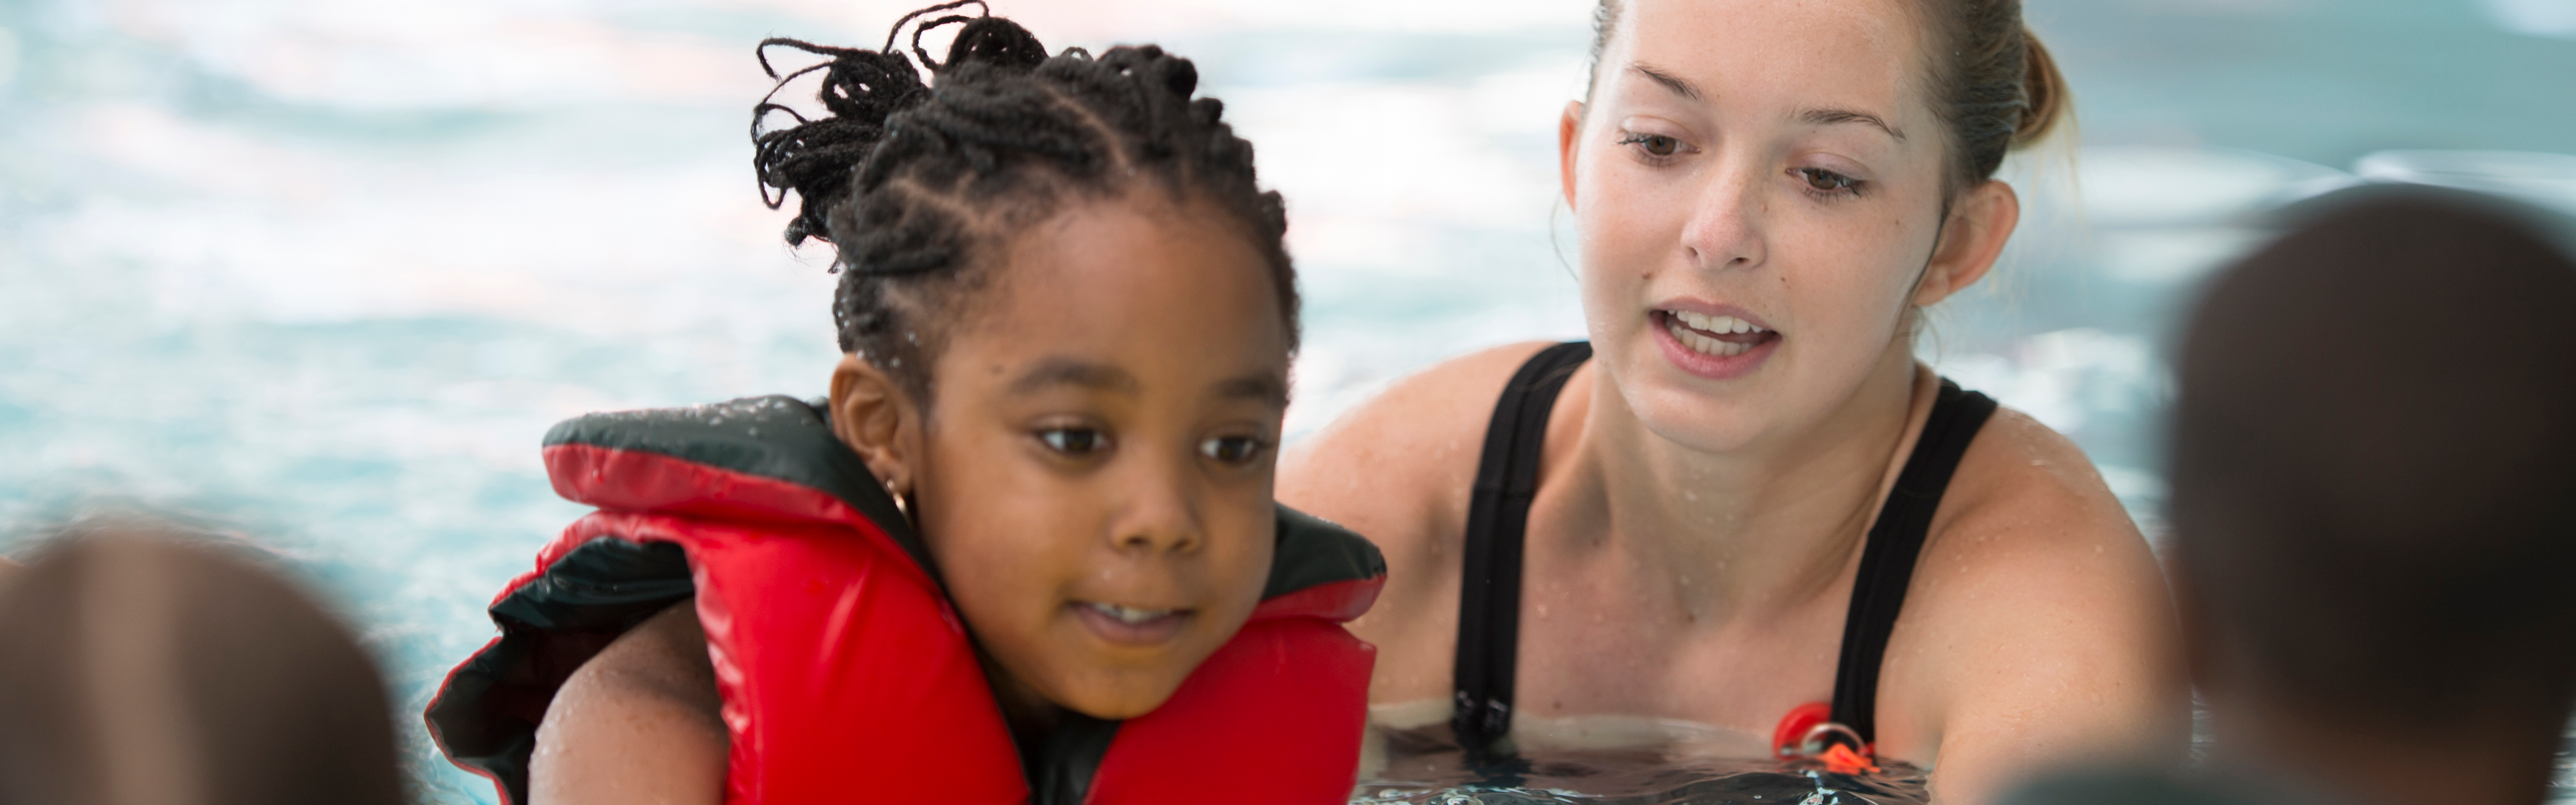 Ask An Expert: How Do You Prevent Childhood Drownings?